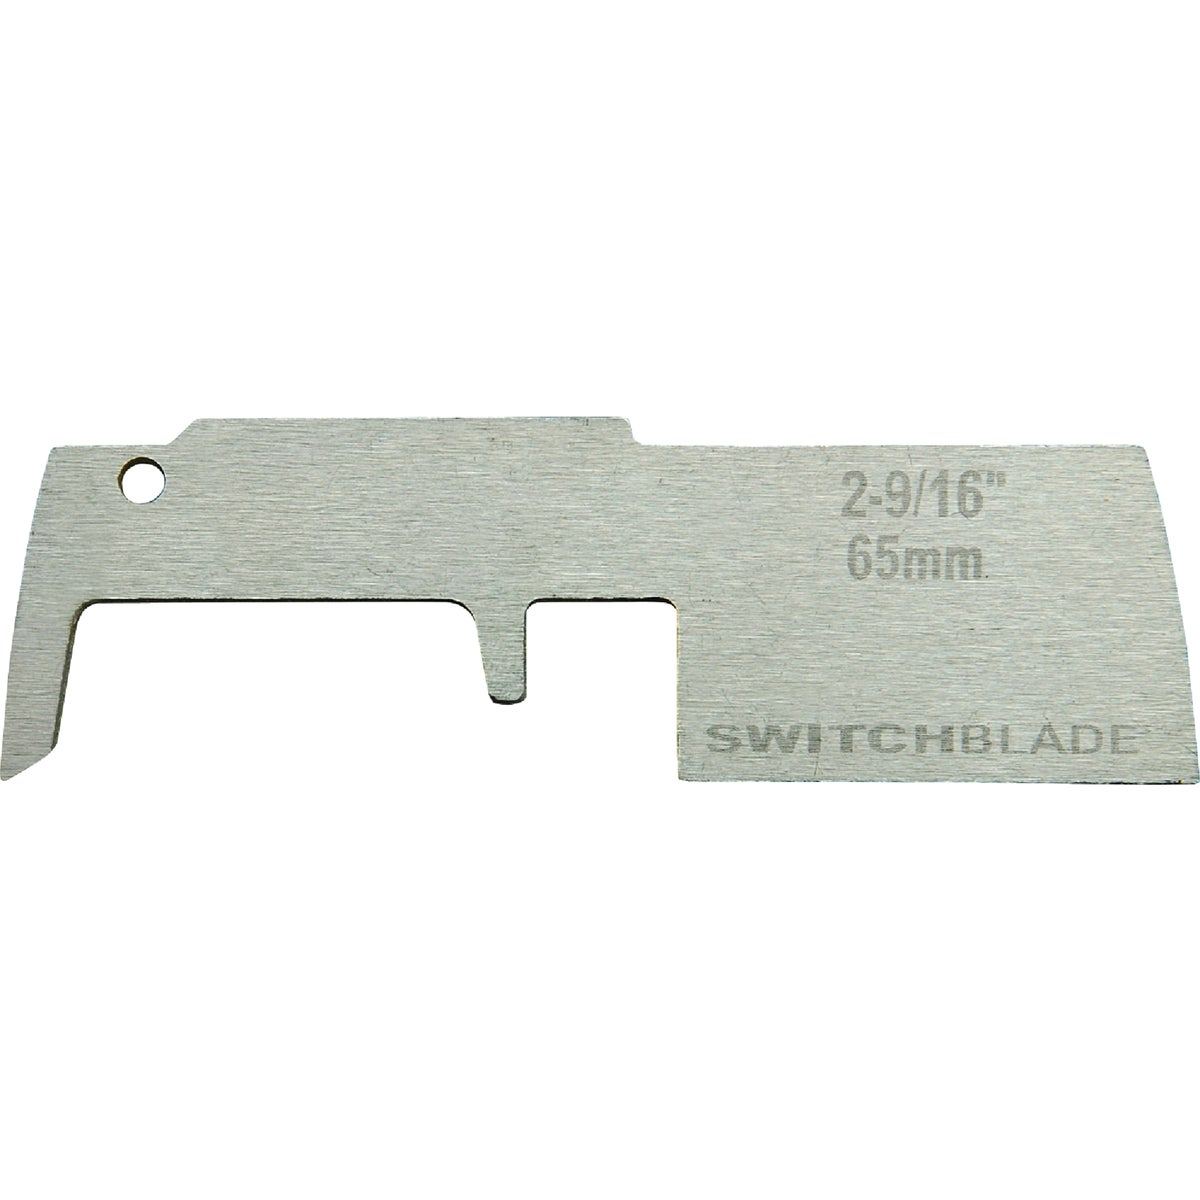 "1PK 1-3/8"" SWITCHBLADE - 48255420 by Milwaukee Accessory"